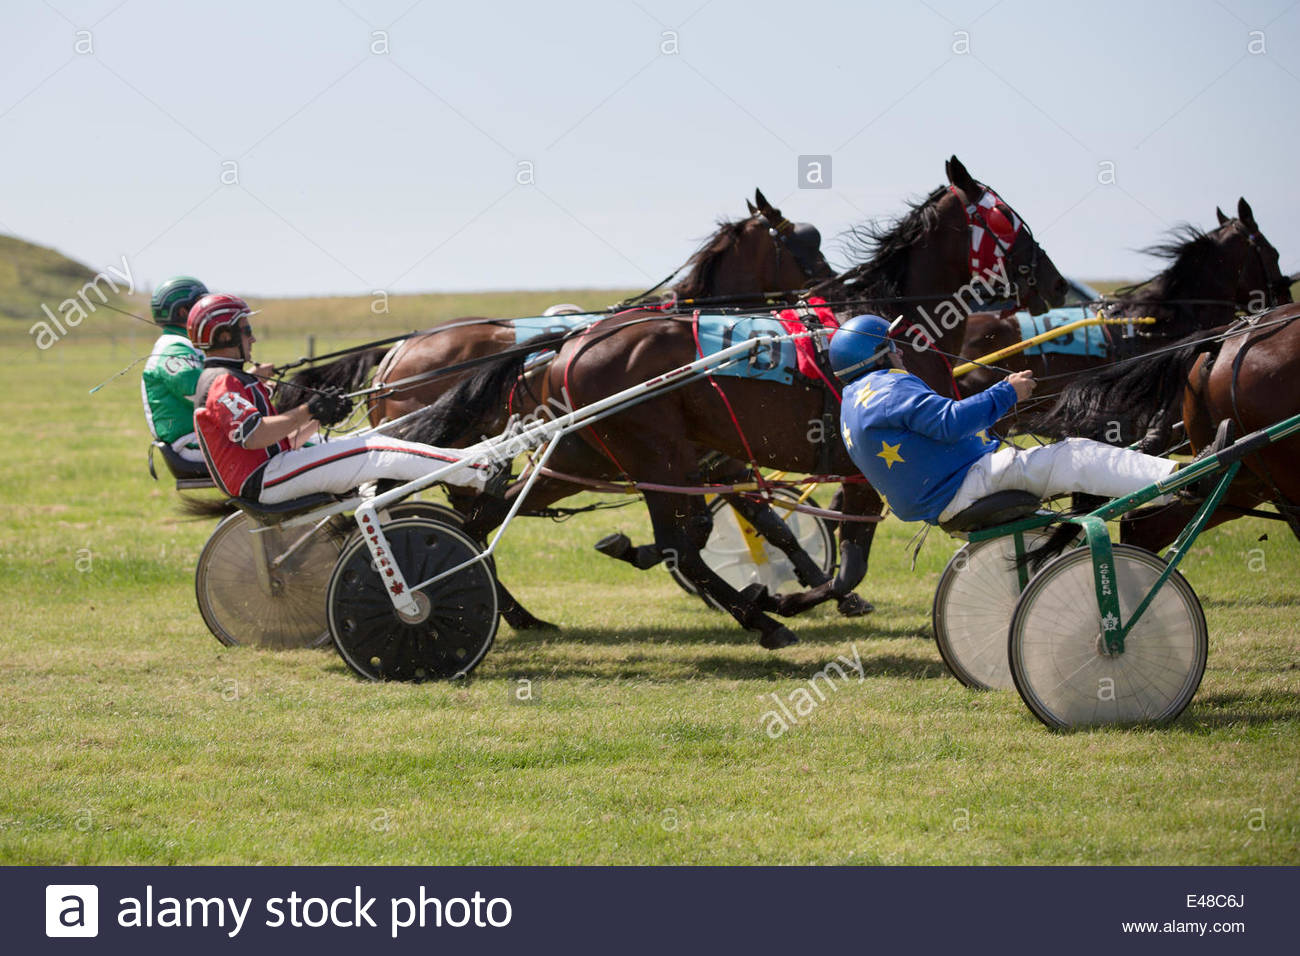 Aberystwyth, Wales, UK. July 5th 2014.  The Ceredigion Trotting Club held a harness racing event in glorious sunshine Stock Photo